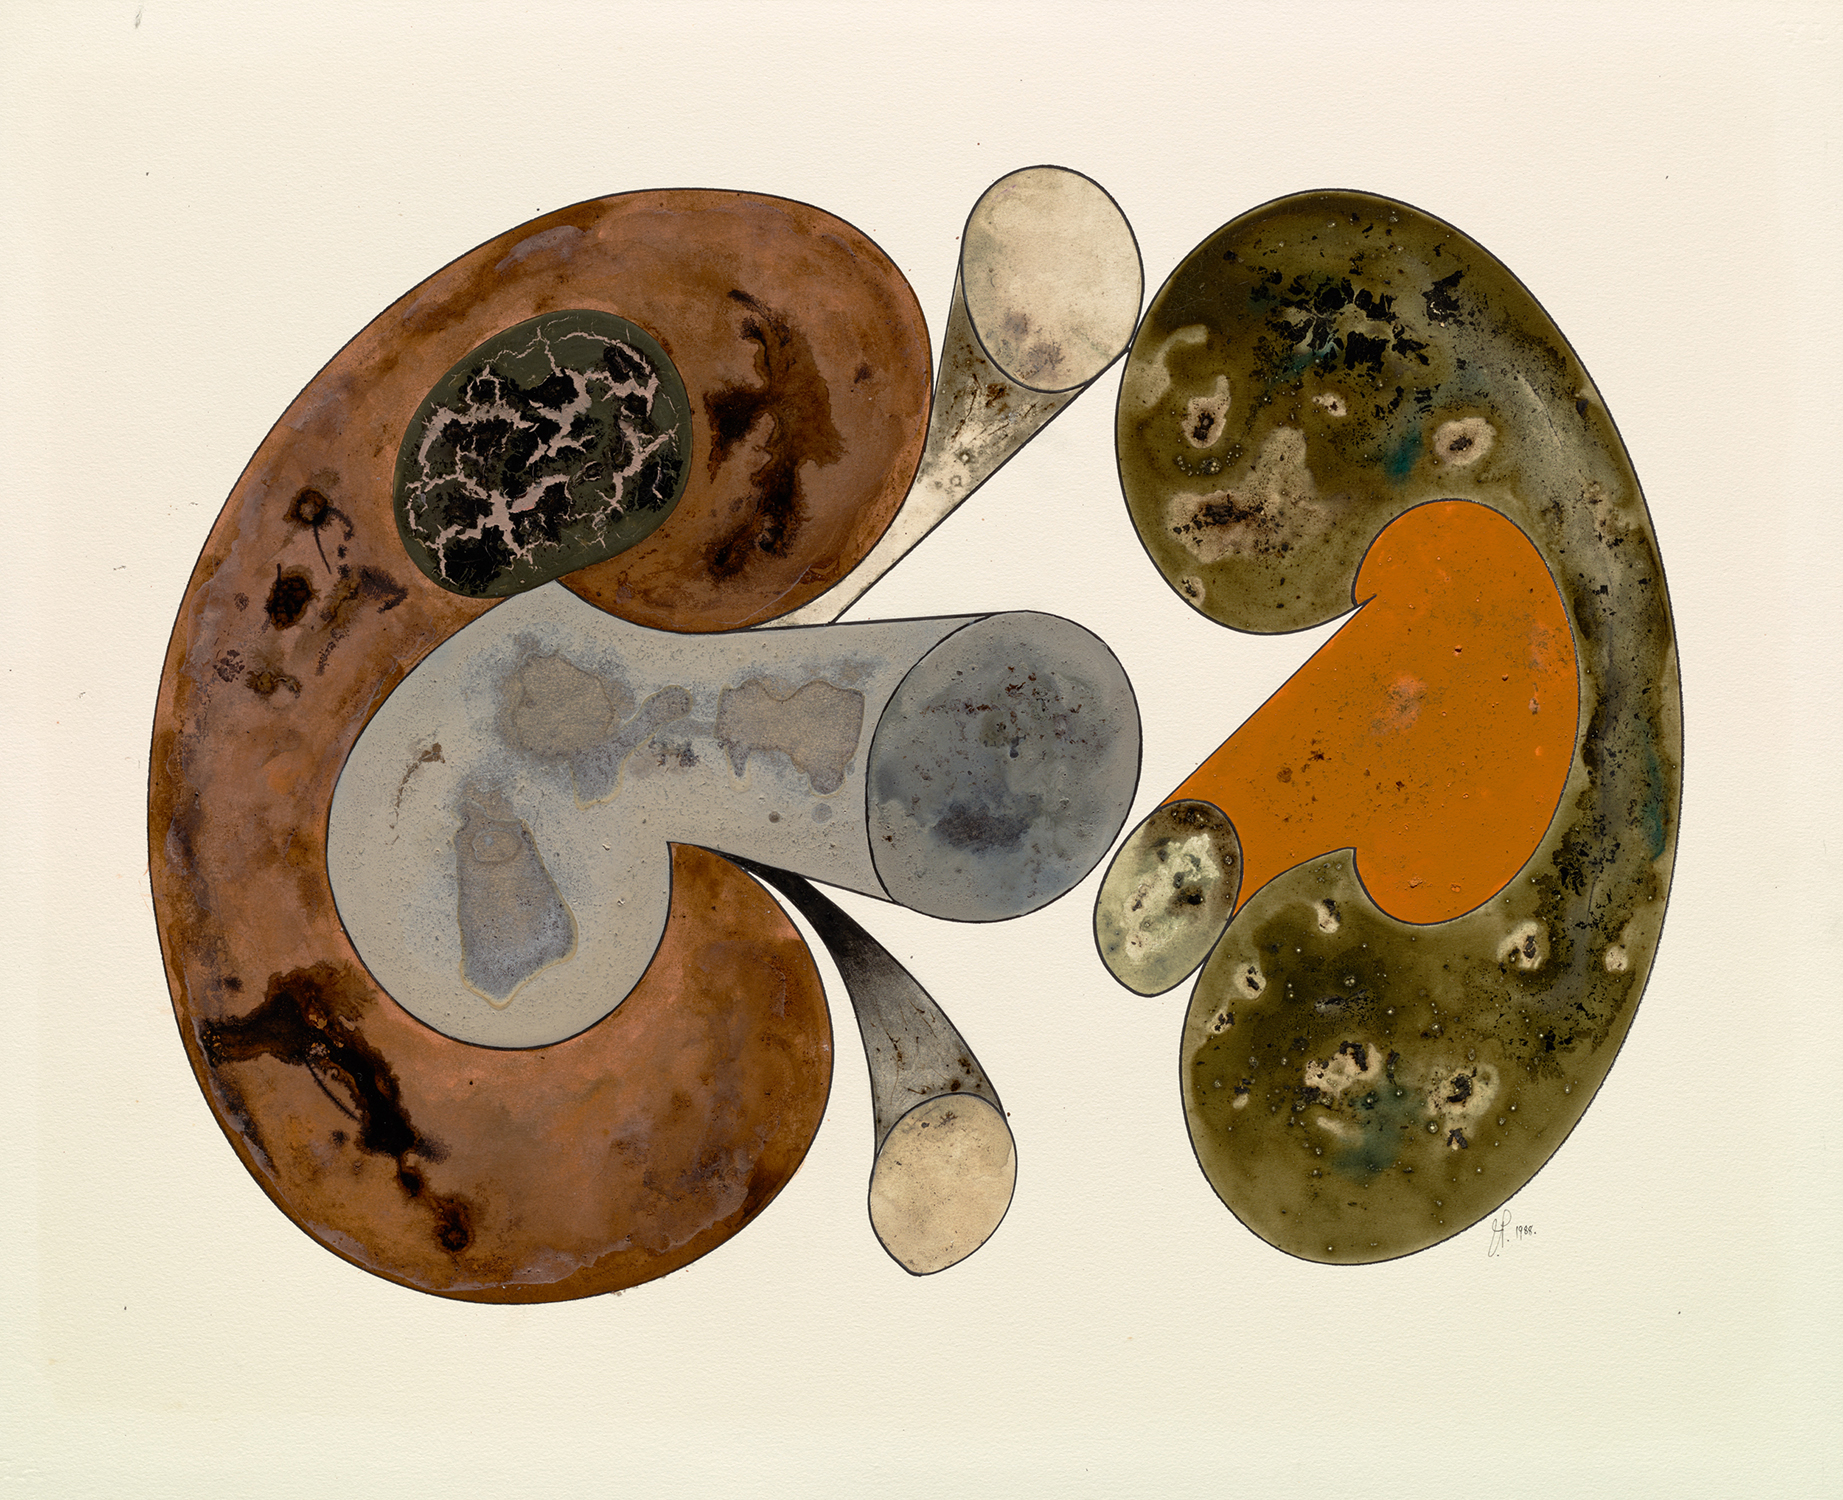 Irving Penn, Aging Mushrooms, 1988. Ink, watercolor, and dry pigment with gum arabic over platinum-palladium print on paper © The Irving Penn Foundation